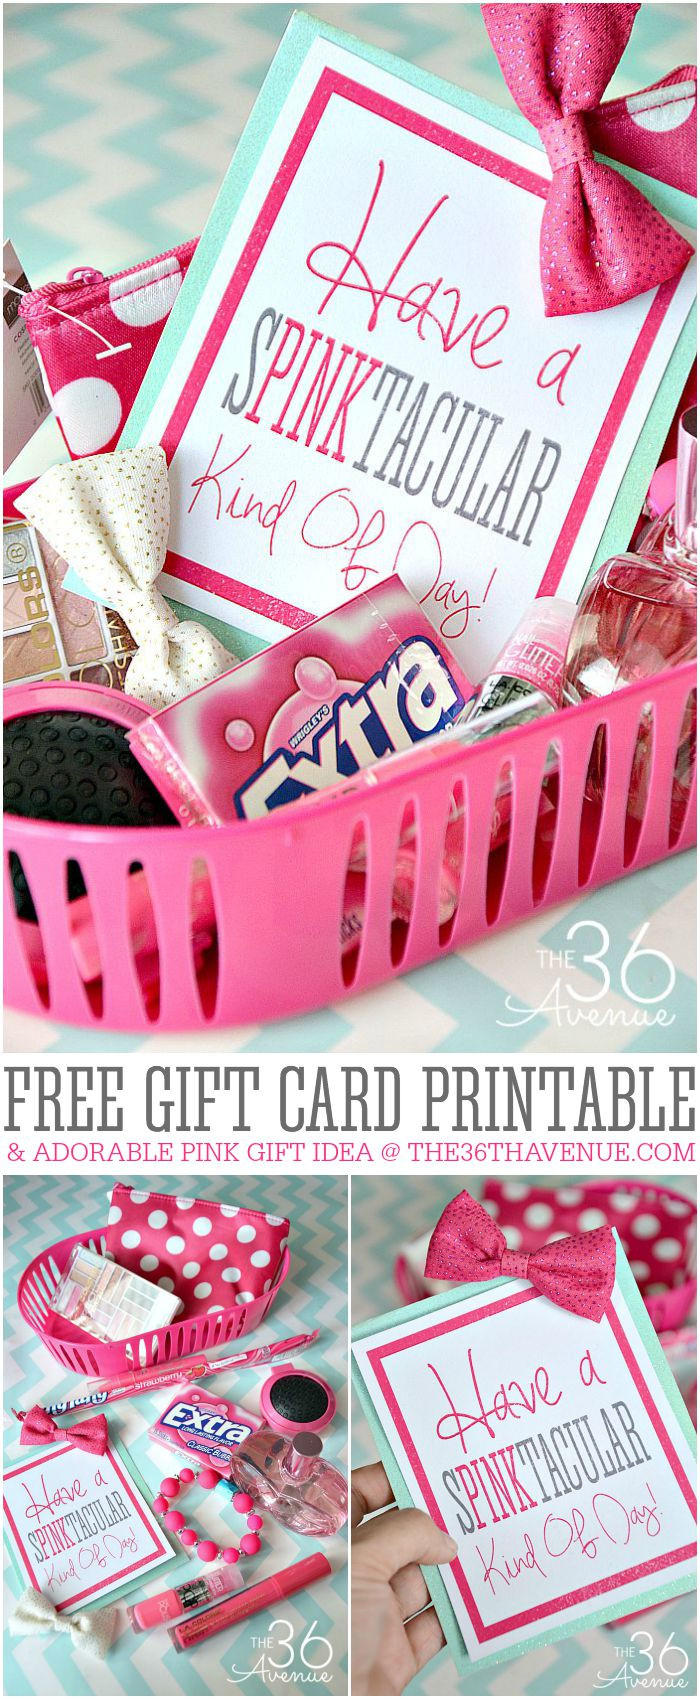 Gift Ideas For Birthday  Gift Idea and Free Gift Card Printable The 36th AVENUE